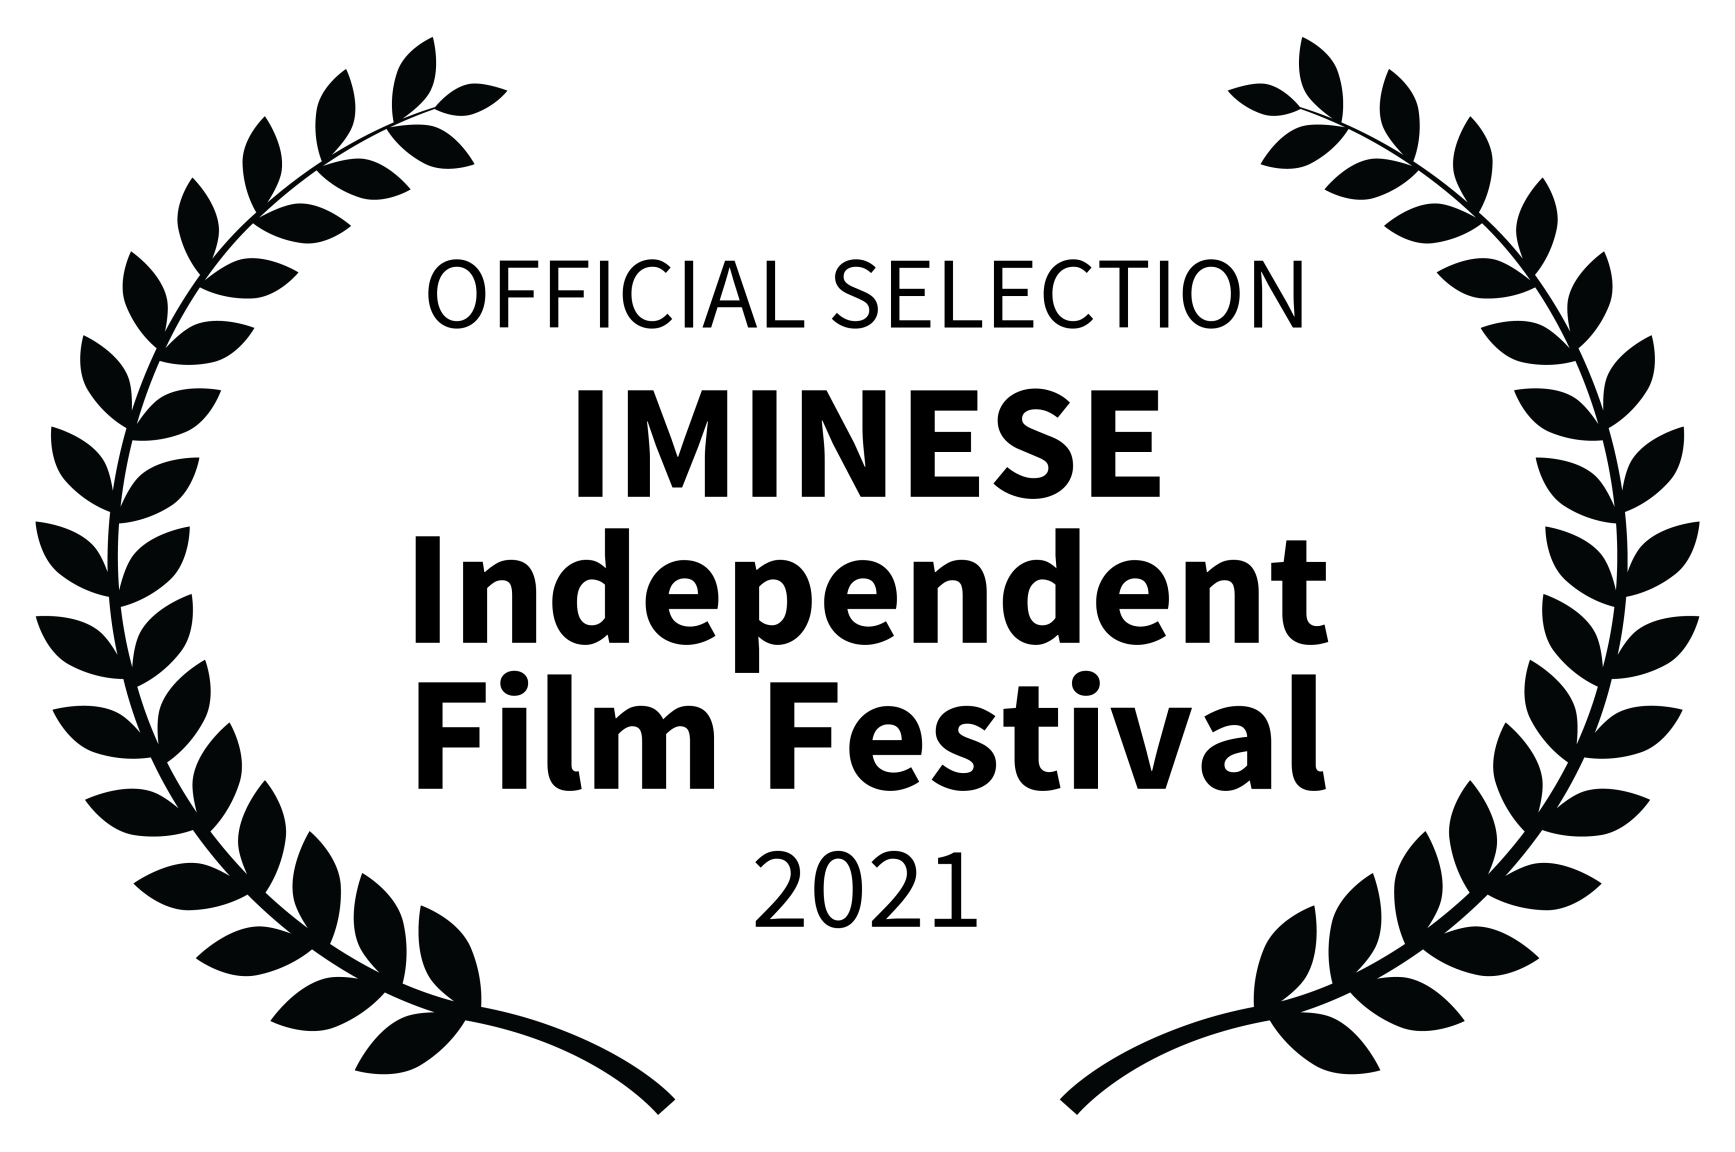 OFFICIAL SELECTION - IMINESE Independent Film Festival - 2021